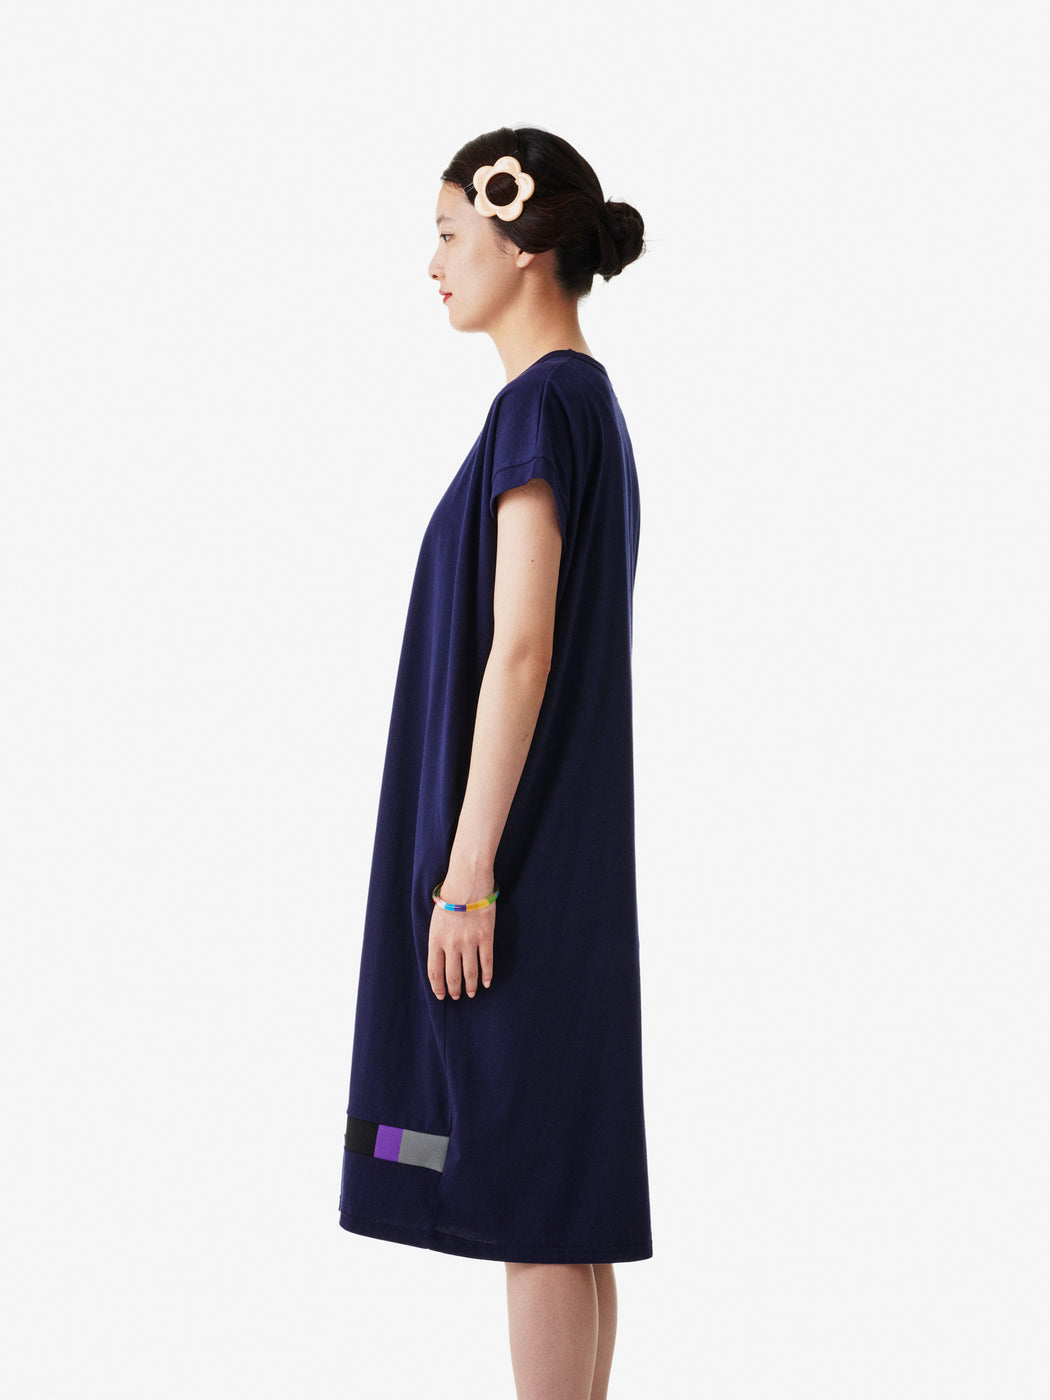 Takahashi Knit Women's Capped Sleeve One-piece Dress